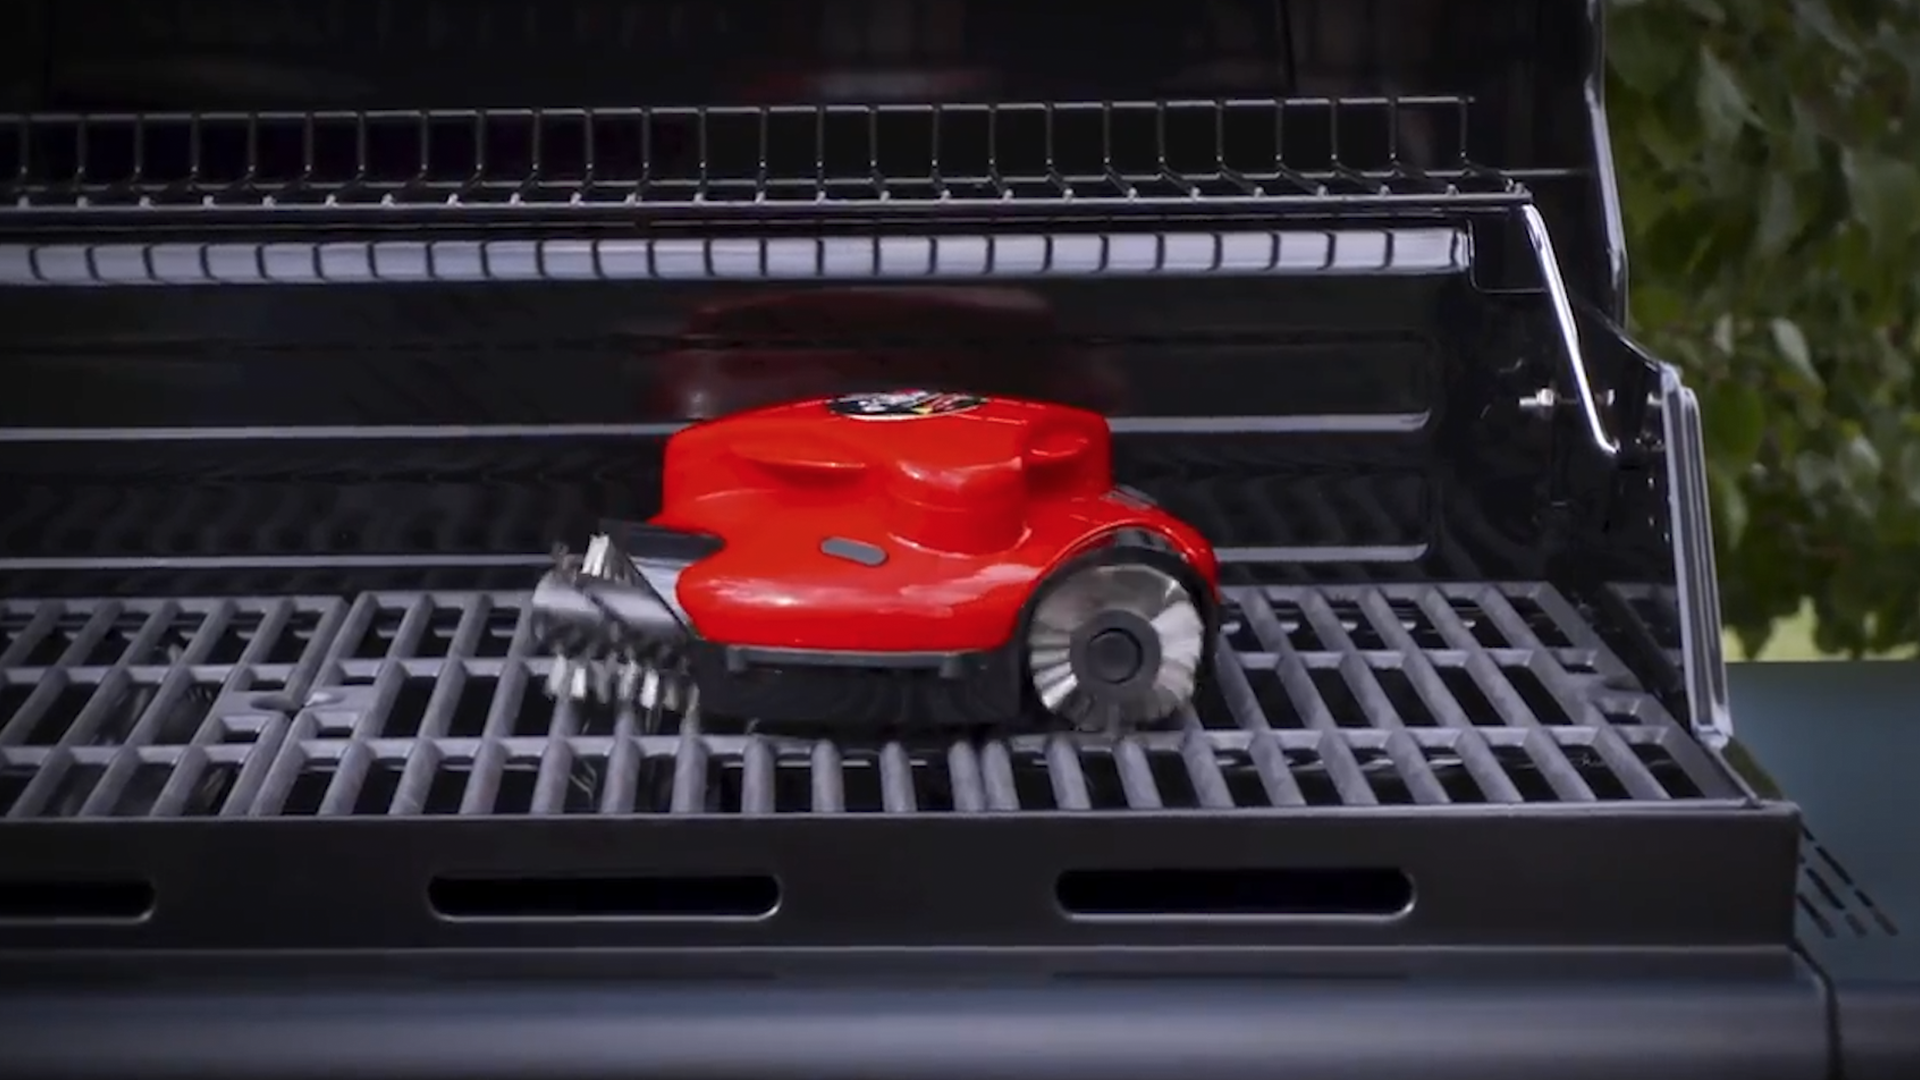 Heres A Roomba For Your Grill